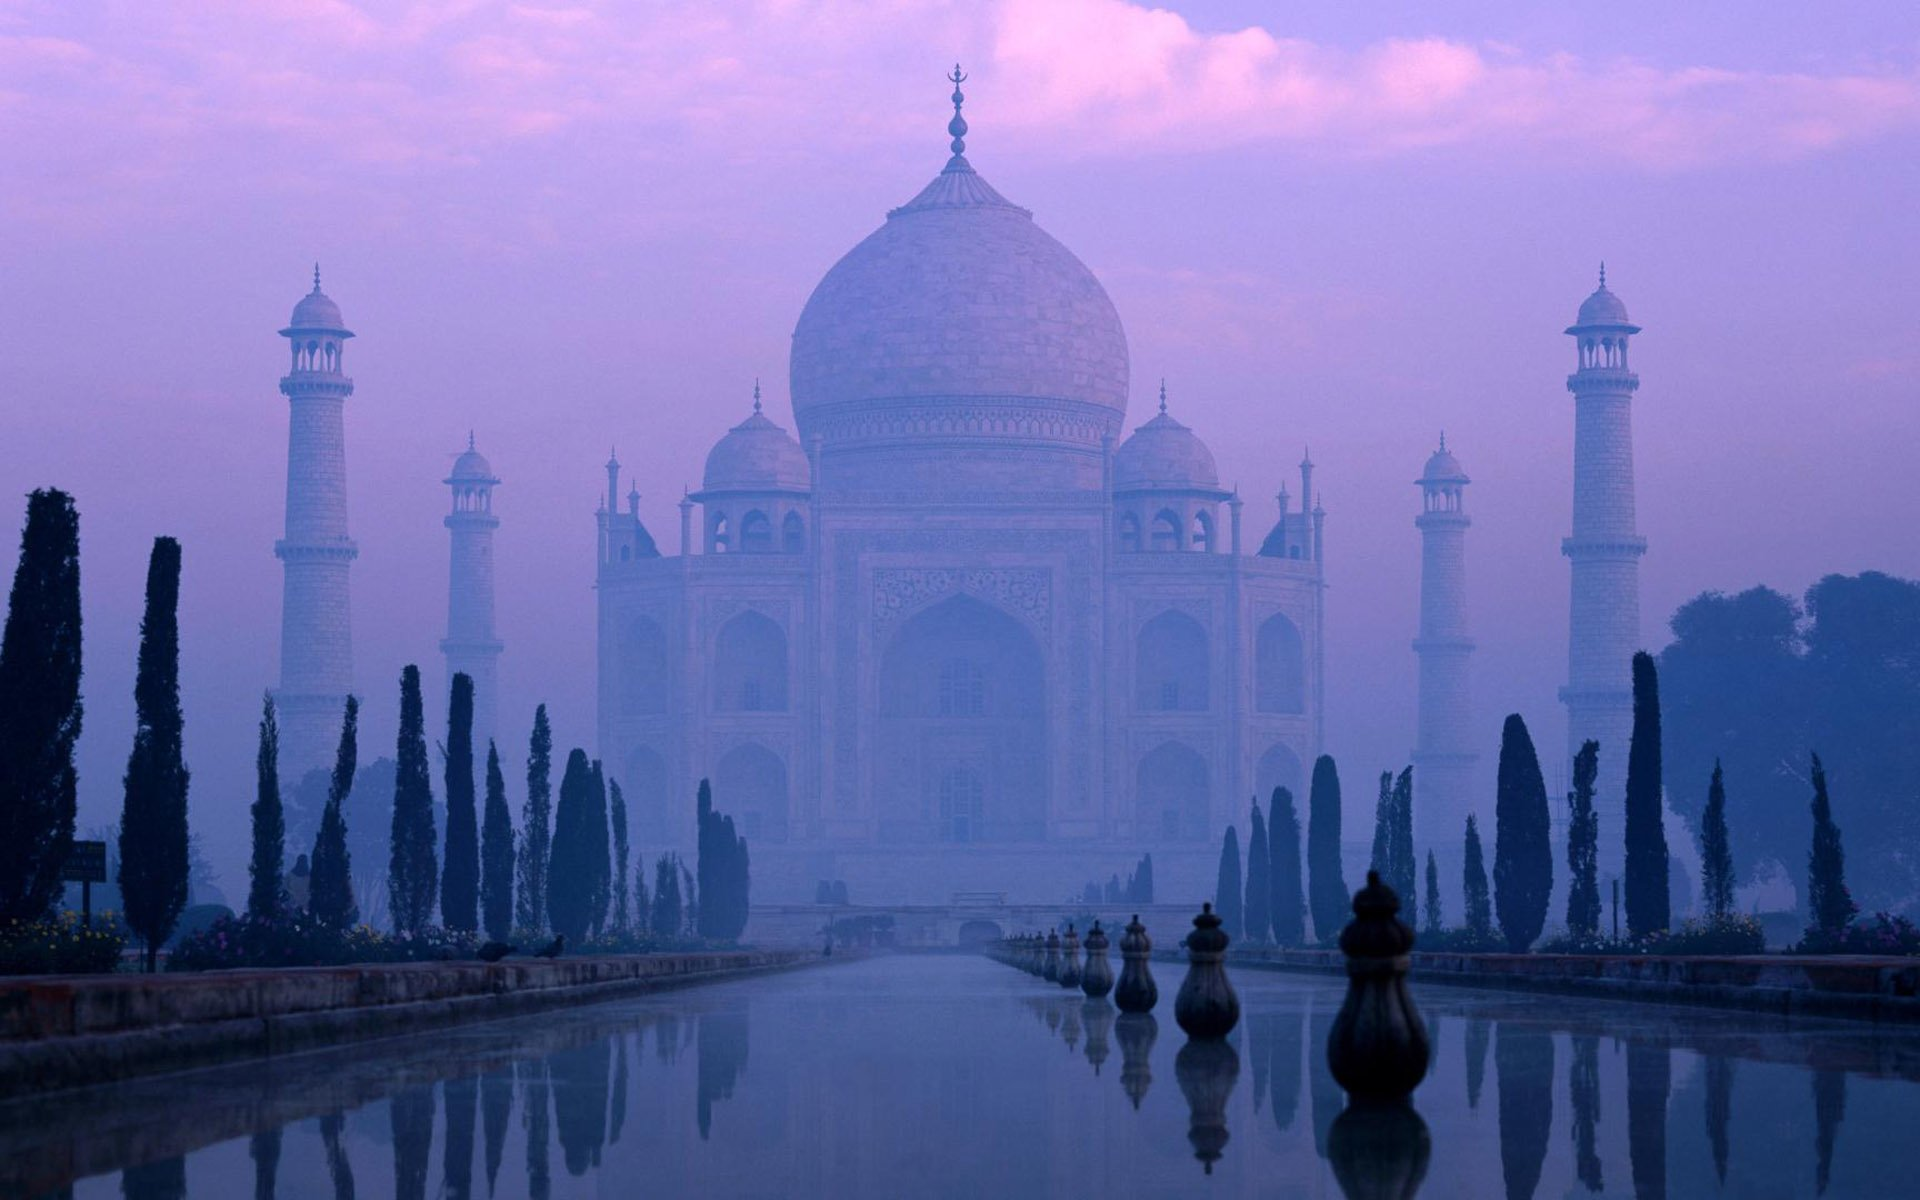 Hd wallpaper taj mahal - Hd Wallpaper Background Id 335222 1920x1200 Man Made Taj Mahal